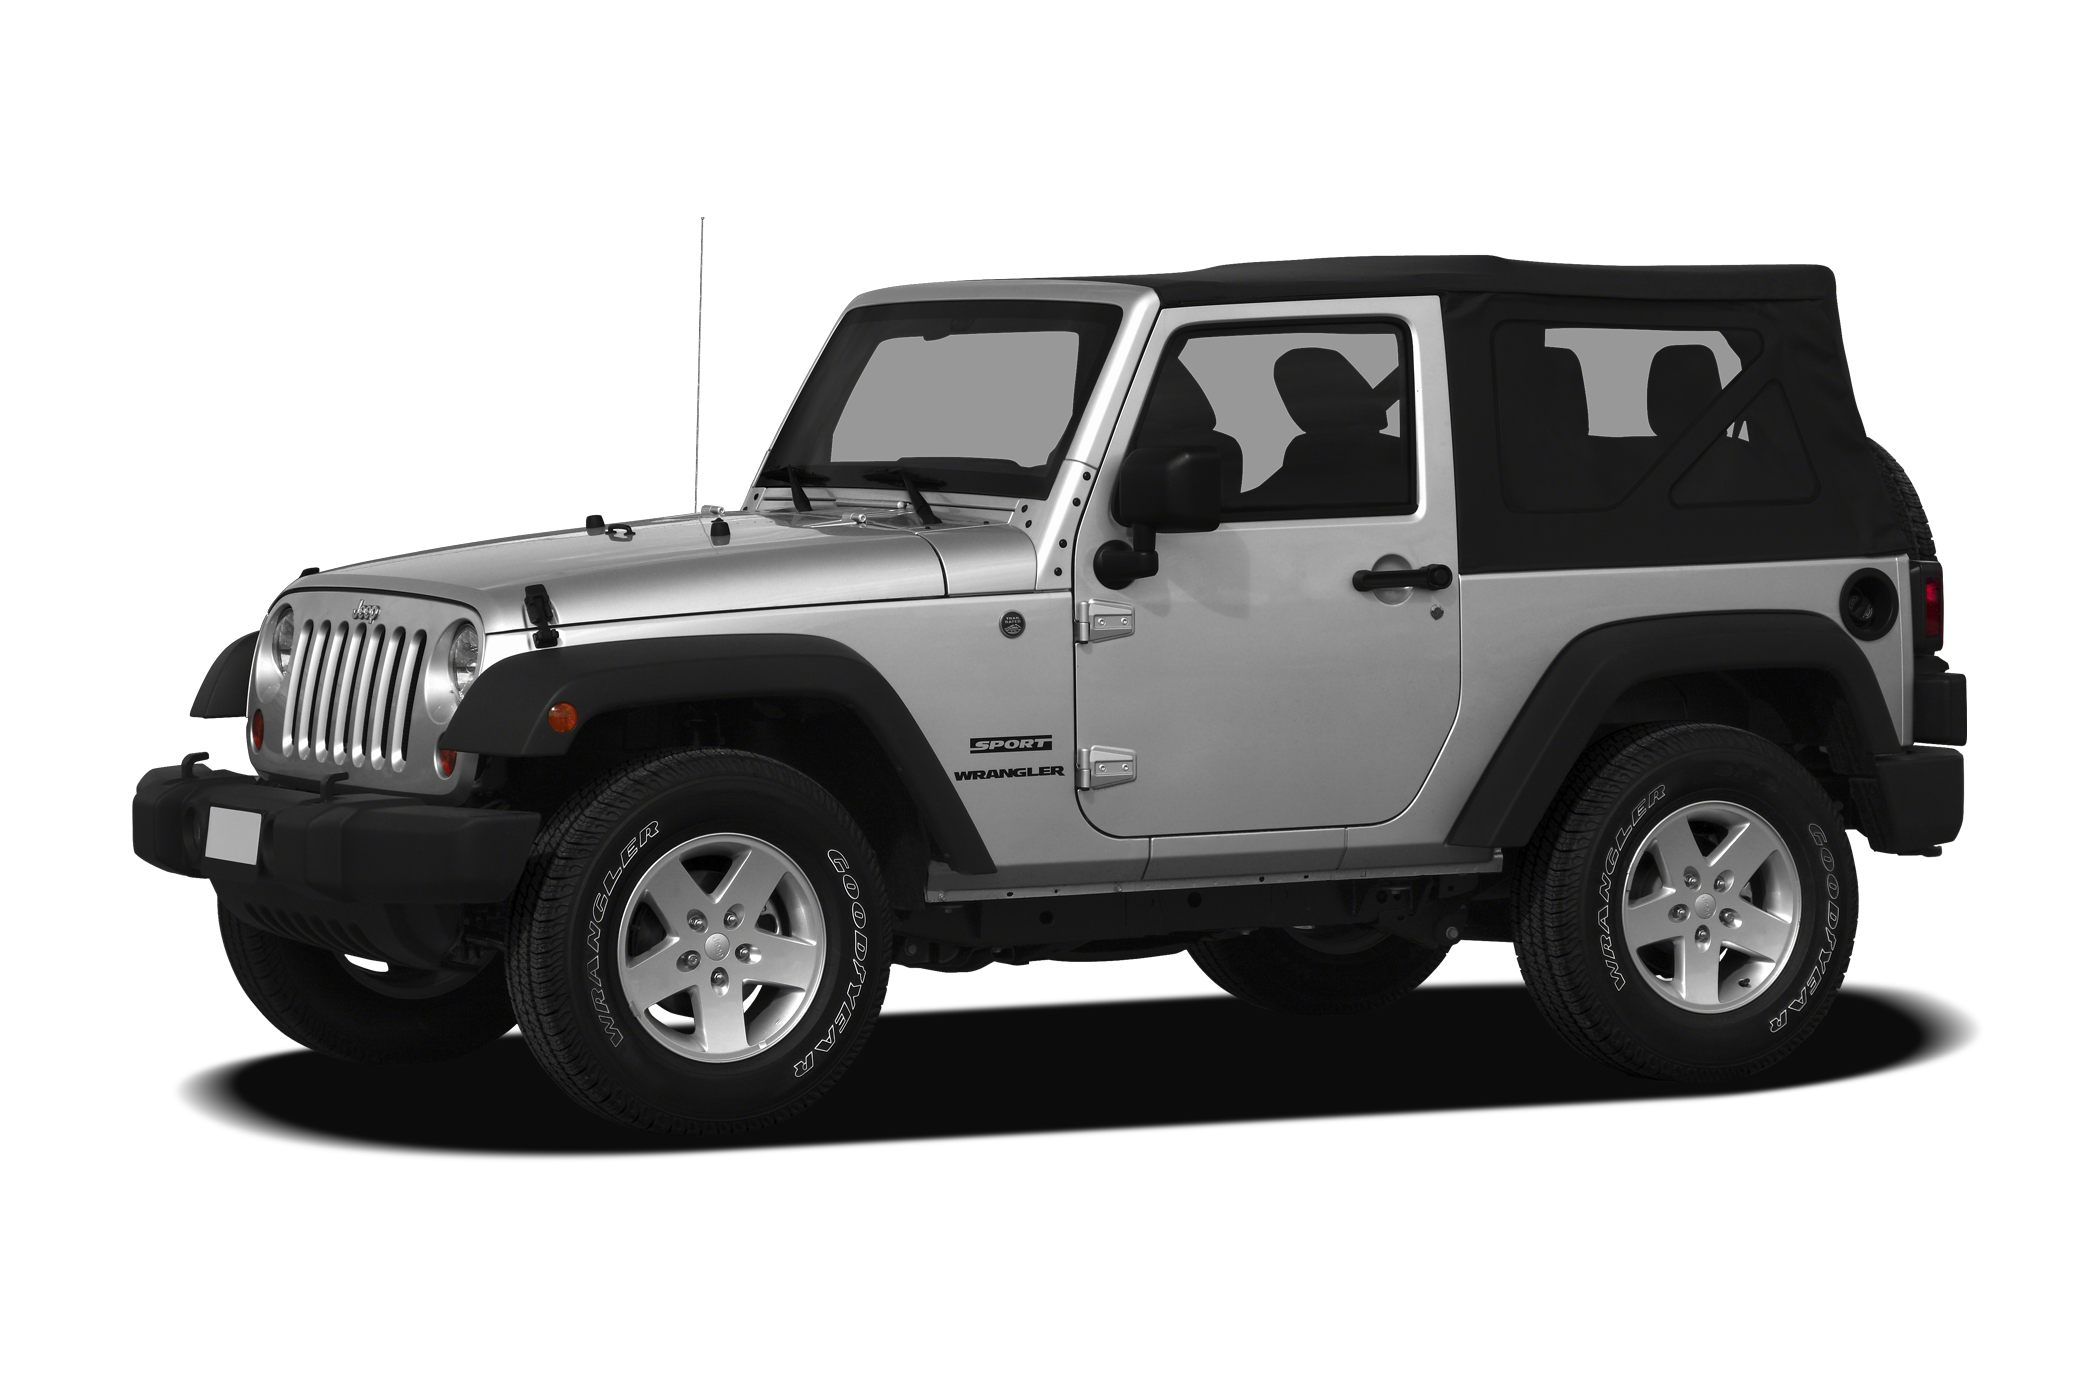 2011 Jeep Wrangler Sport SUV for sale in Muscatine for $21,995 with 21,249 miles.